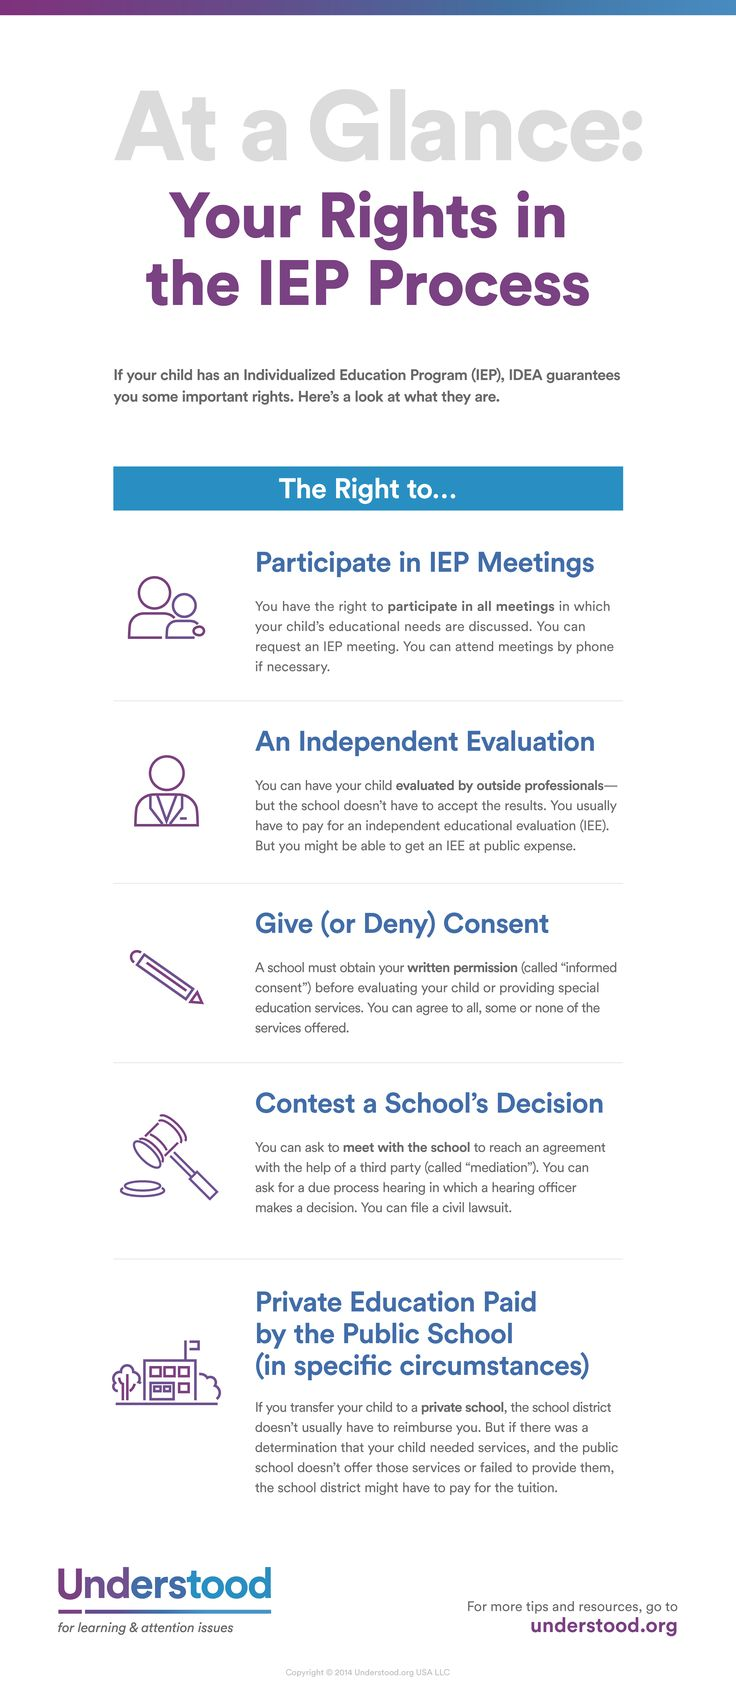 Graphic of At a Glance: Your Rights in the IEP Process